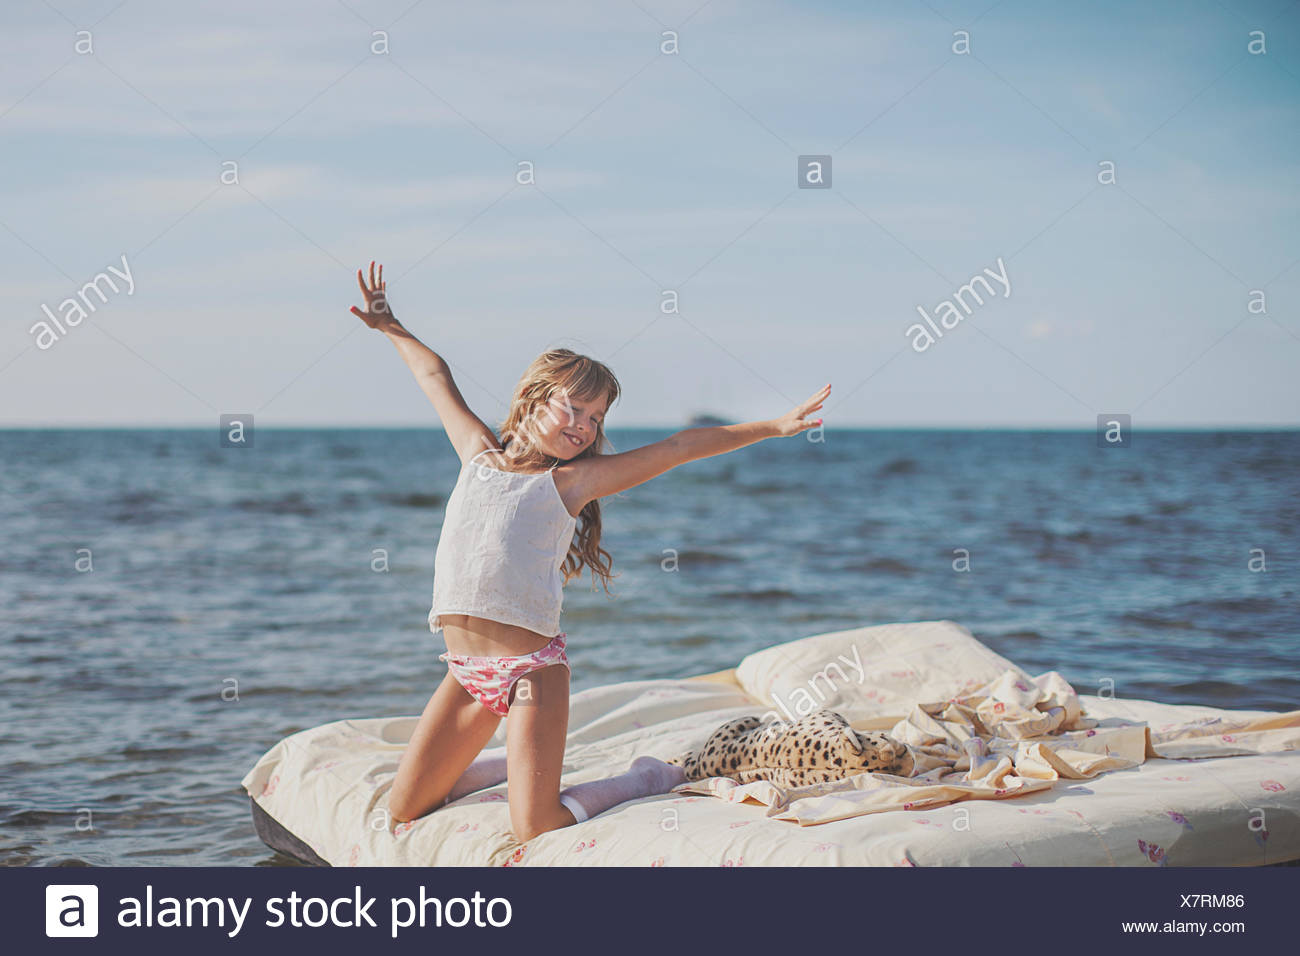 Young blonde haired child (8-9) on air bed at sea - Stock Image